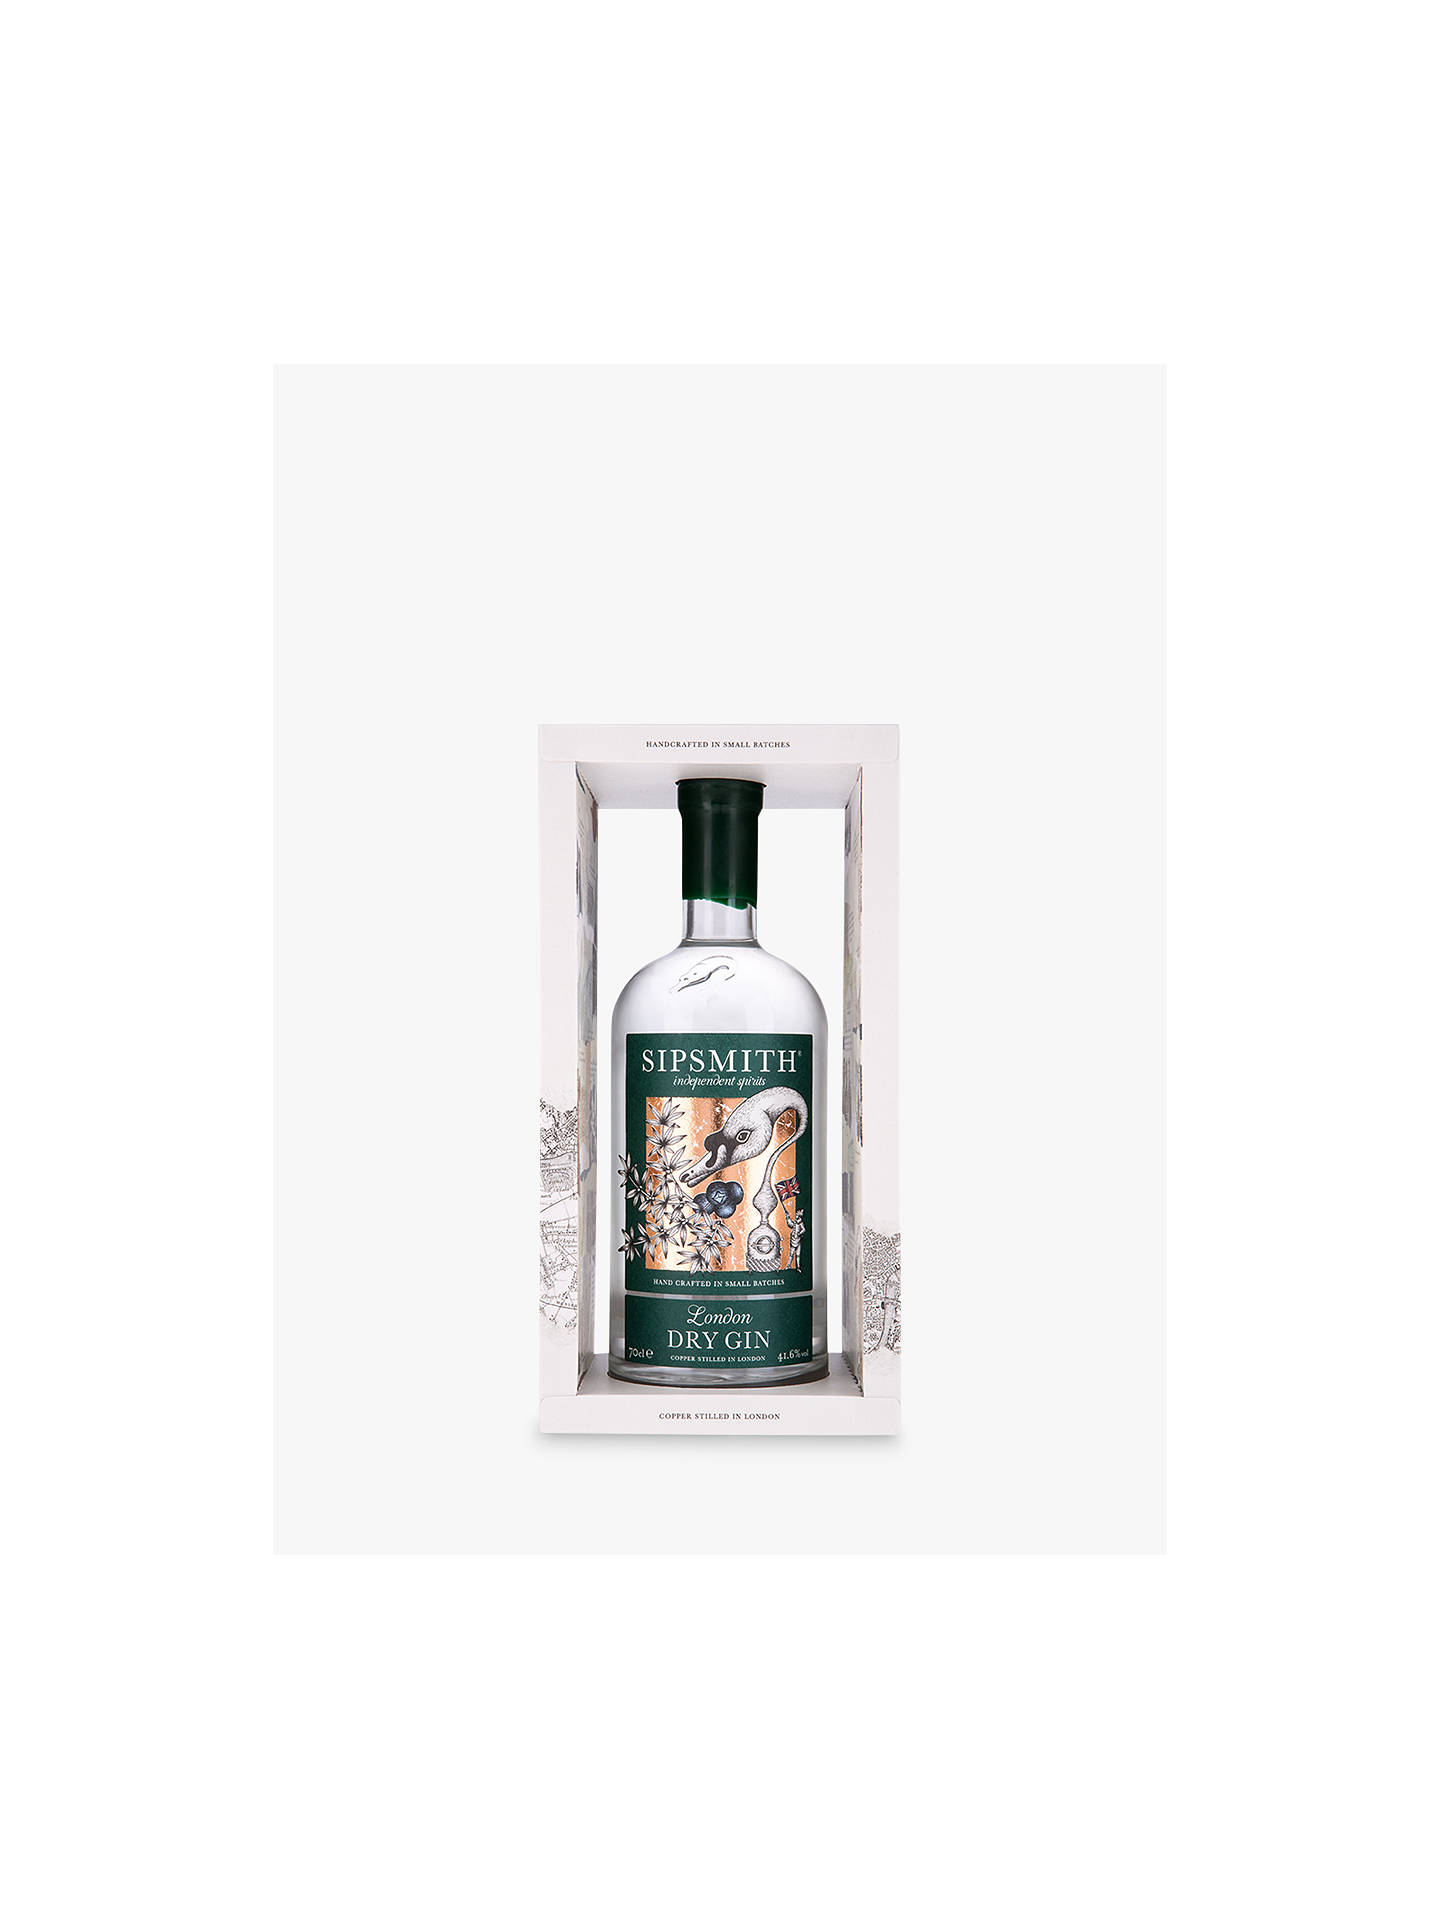 BuySipsmith London Dry Gin Gift Box, 70cl Online at johnlewis.com